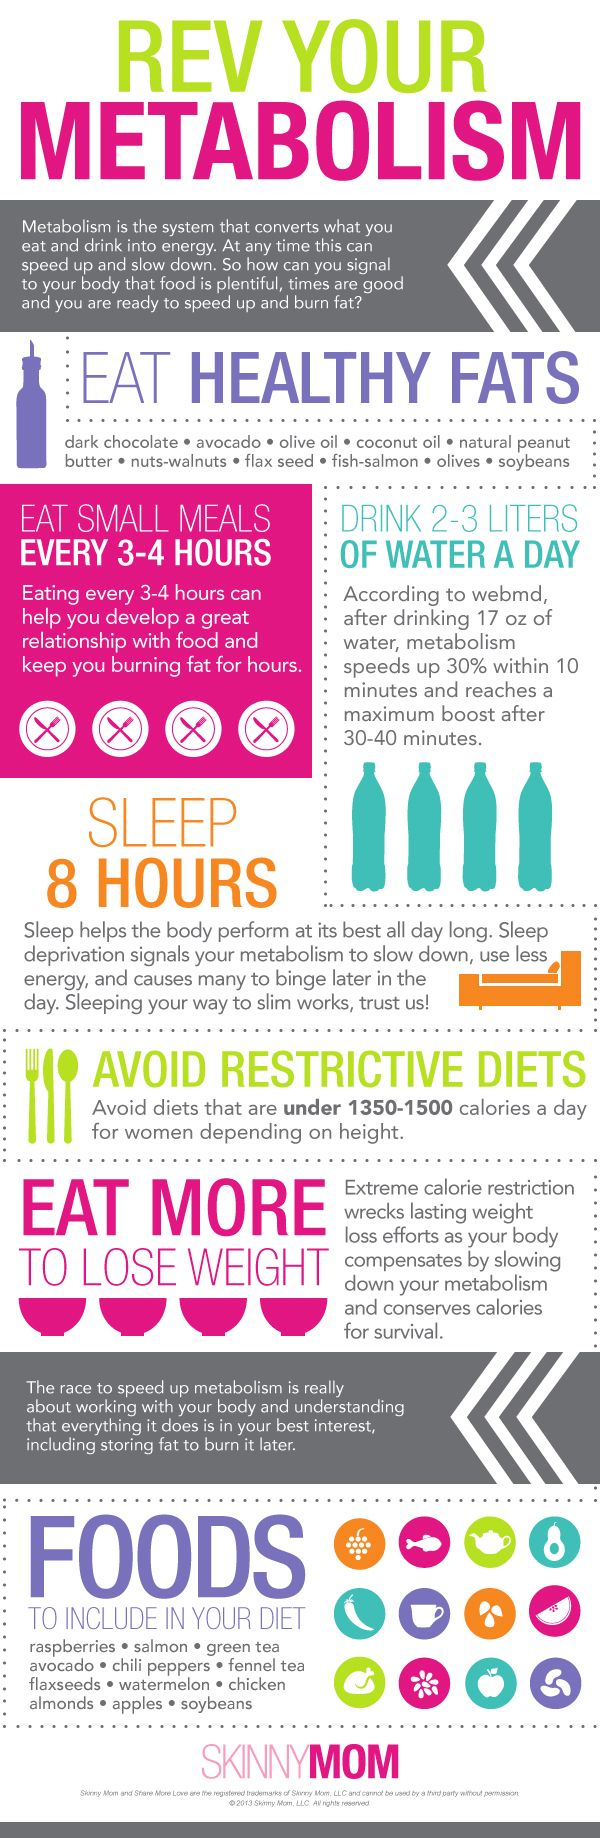 Tips on weight loss and metabolism too good to pass up!